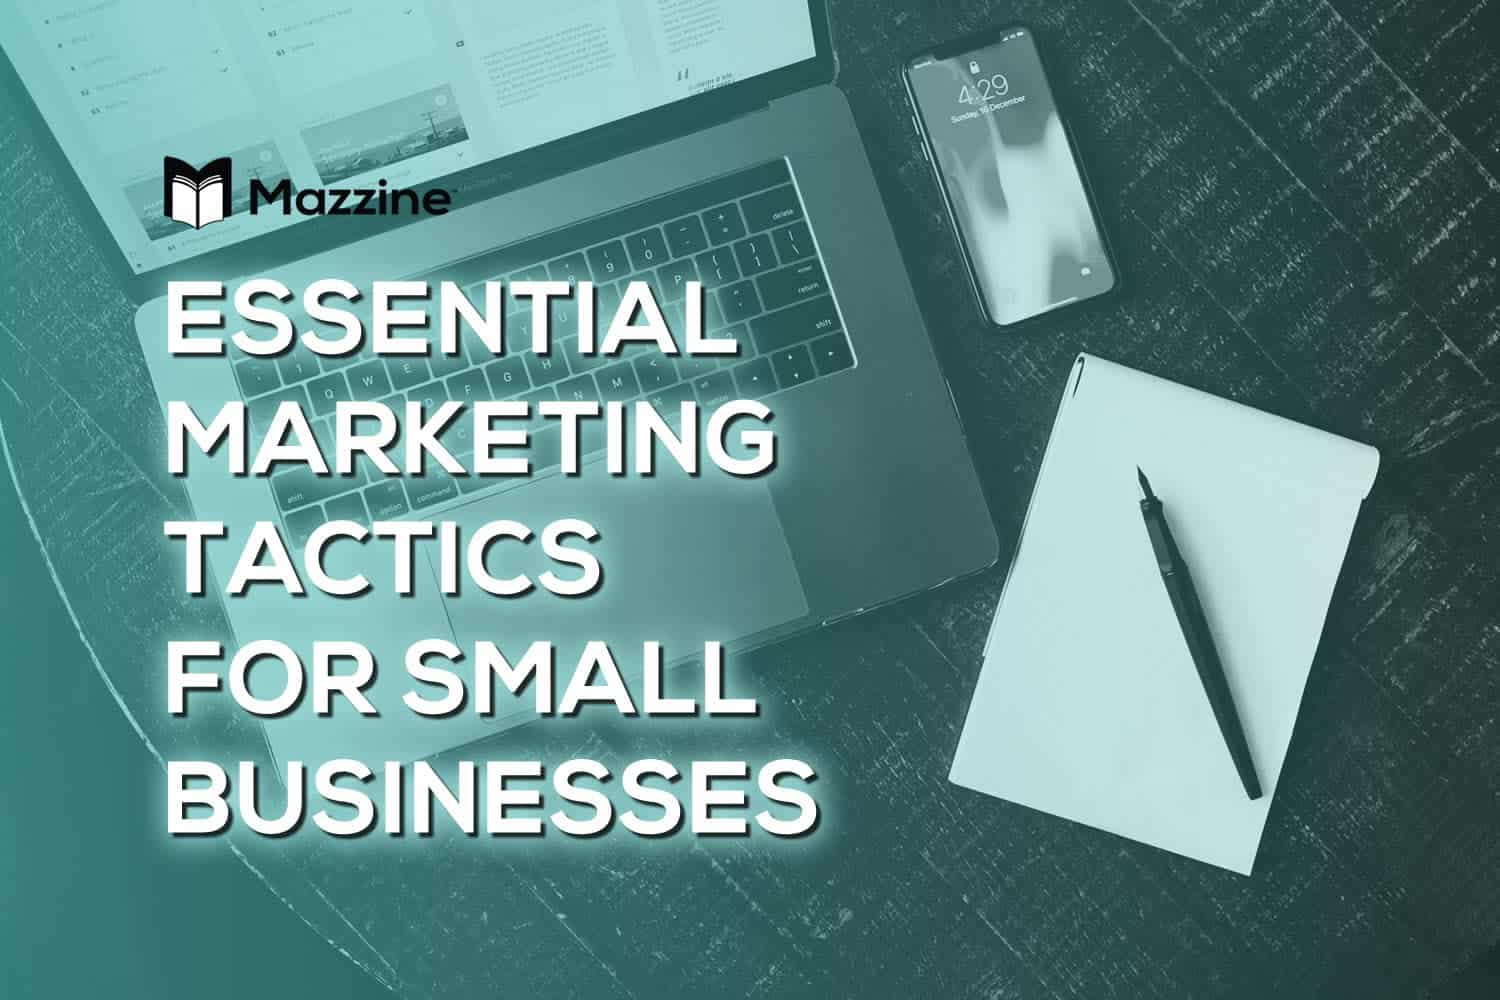 Essential Marketing Tactics for Small Businesses